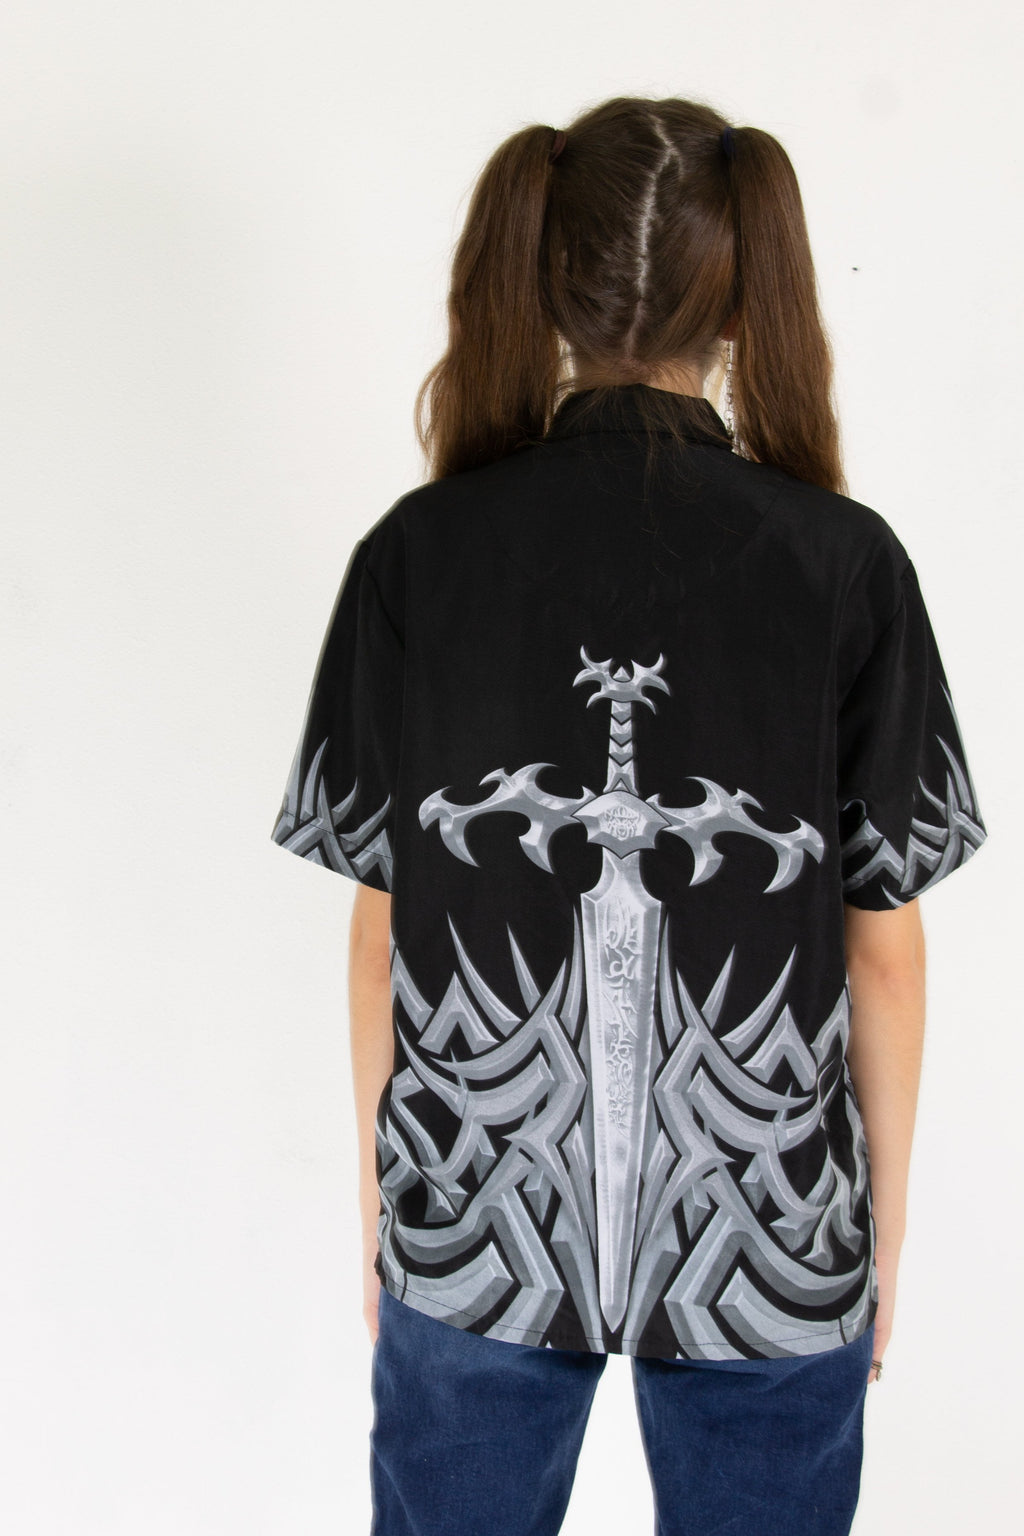 00's Holy Sword Button Up